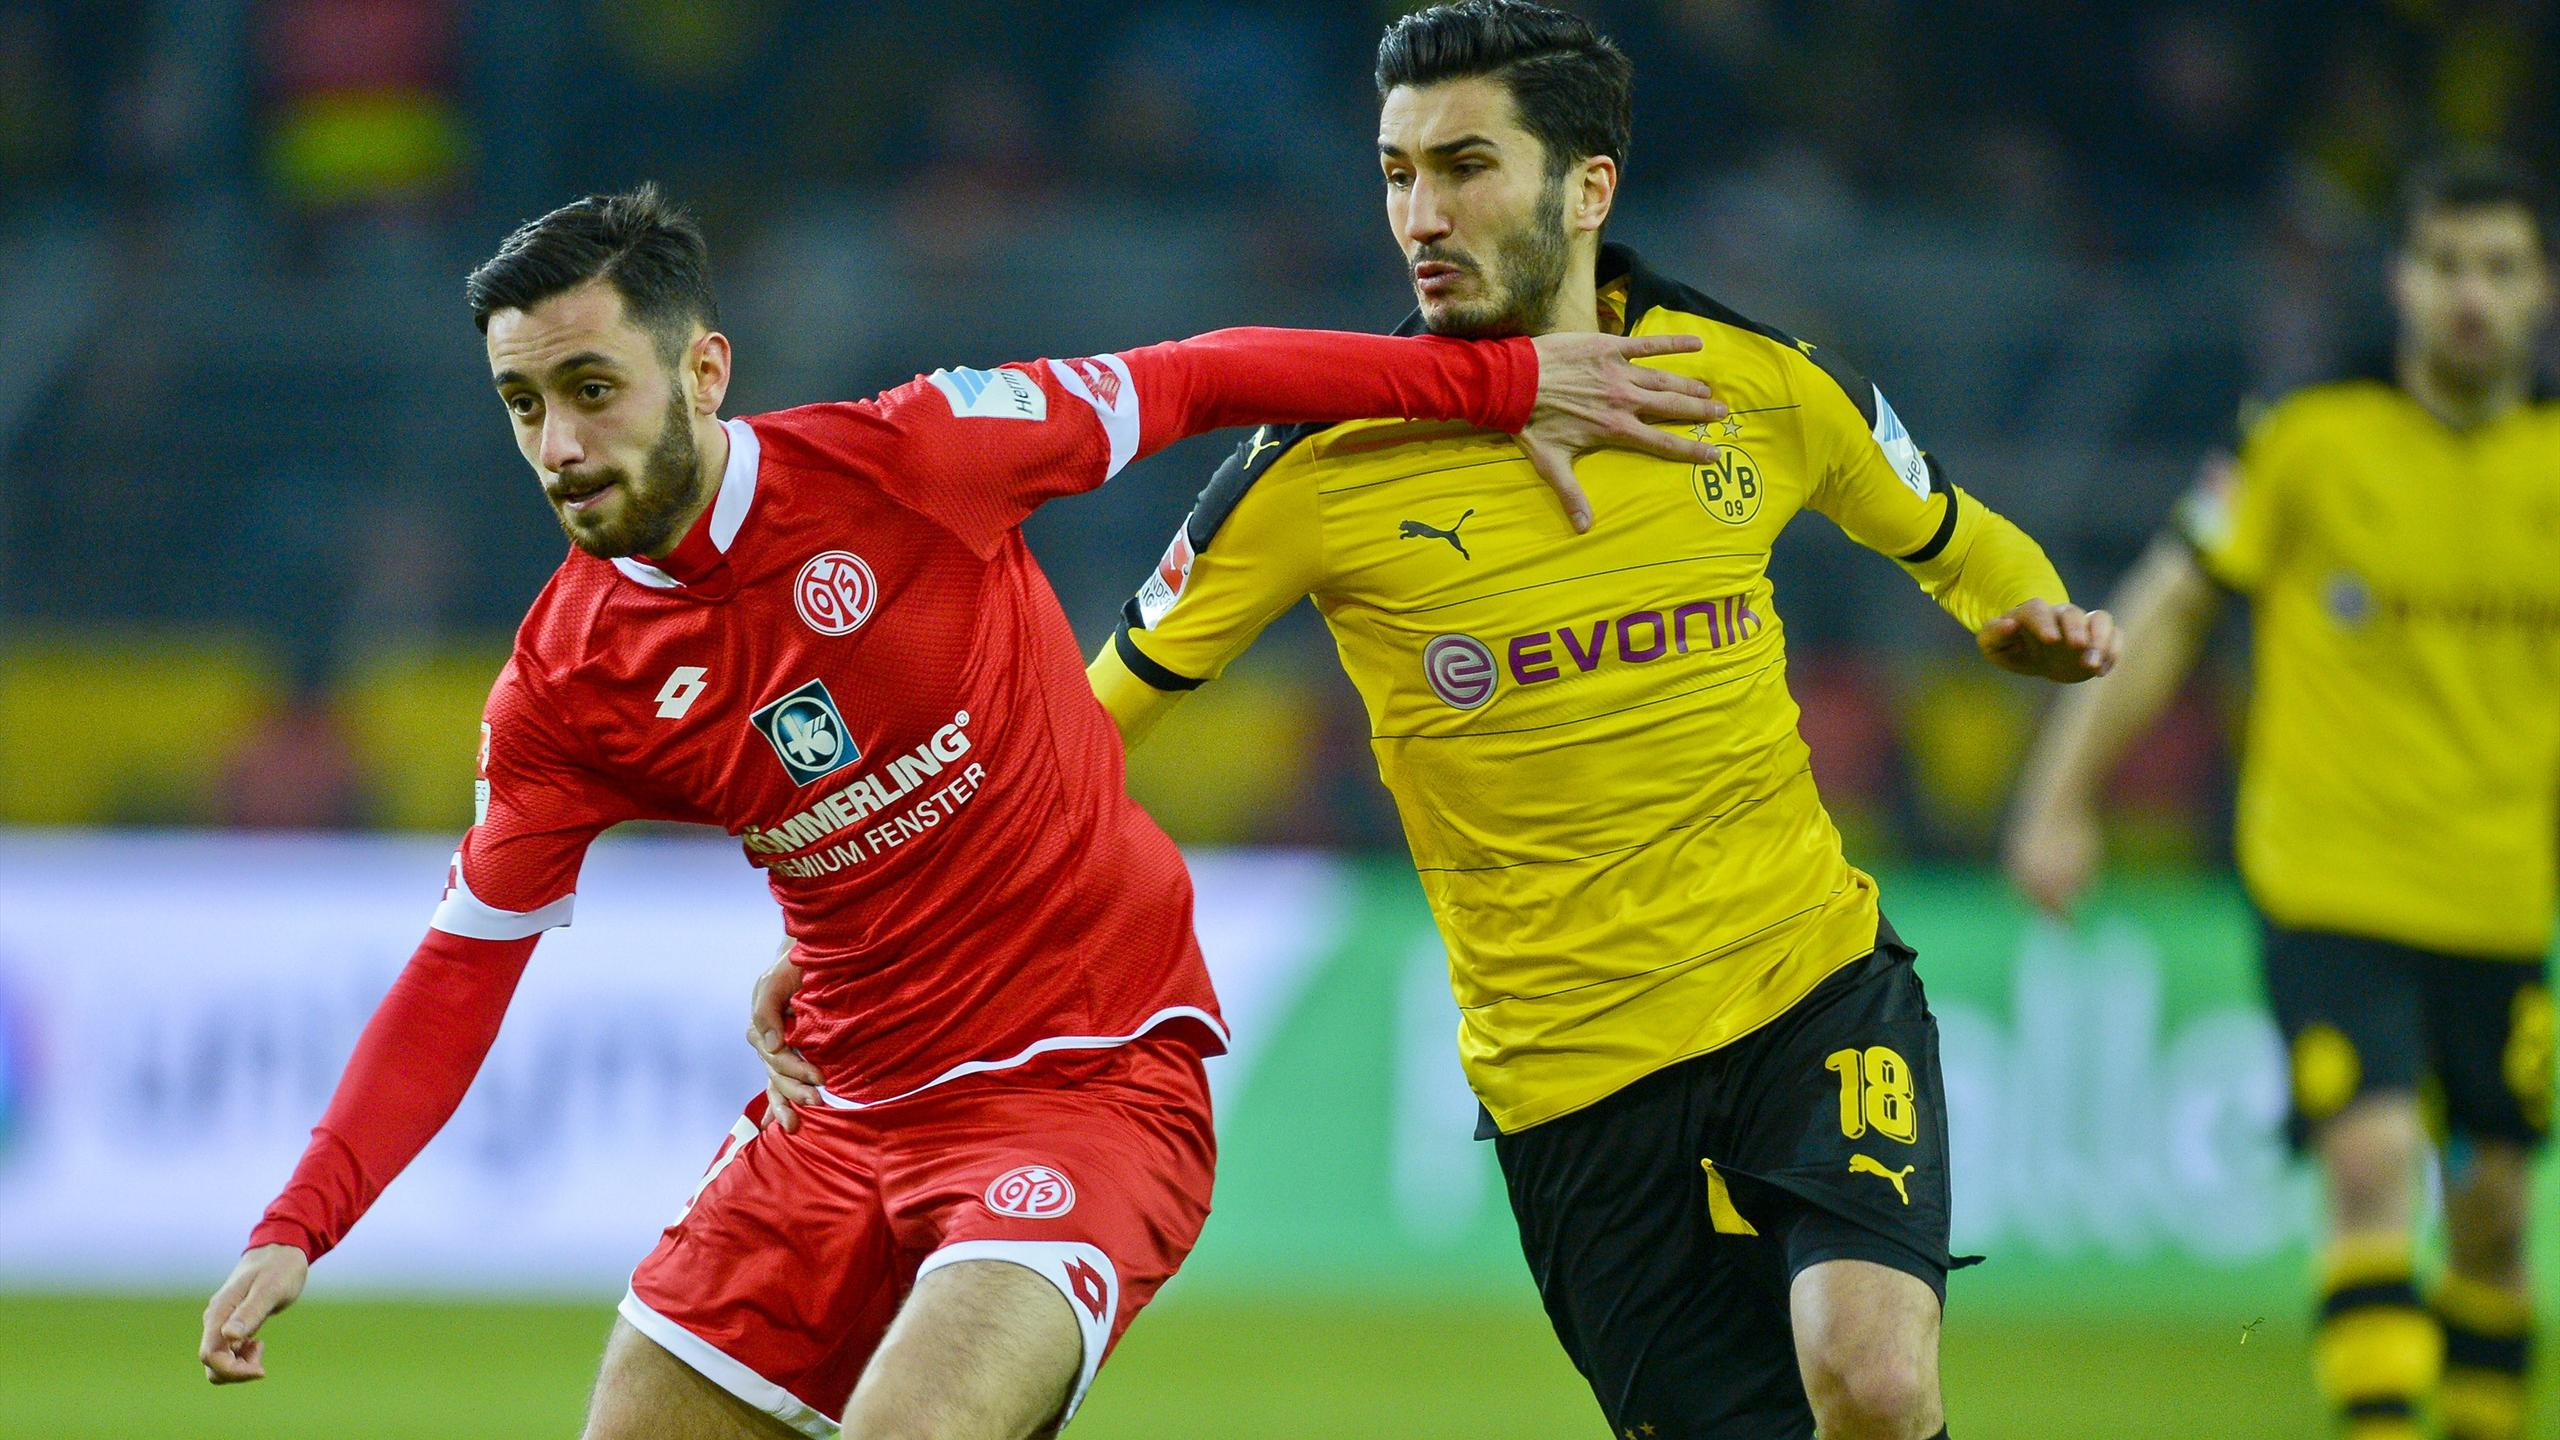 Dortmund's Nuri Sahin (R) and Mainz's Yunus Malli vie for the ball during the German first division Bundesliga football match Borussia Dortmund v 1 FSV Mainz 05 in Dortmund, on March 13, 2016.